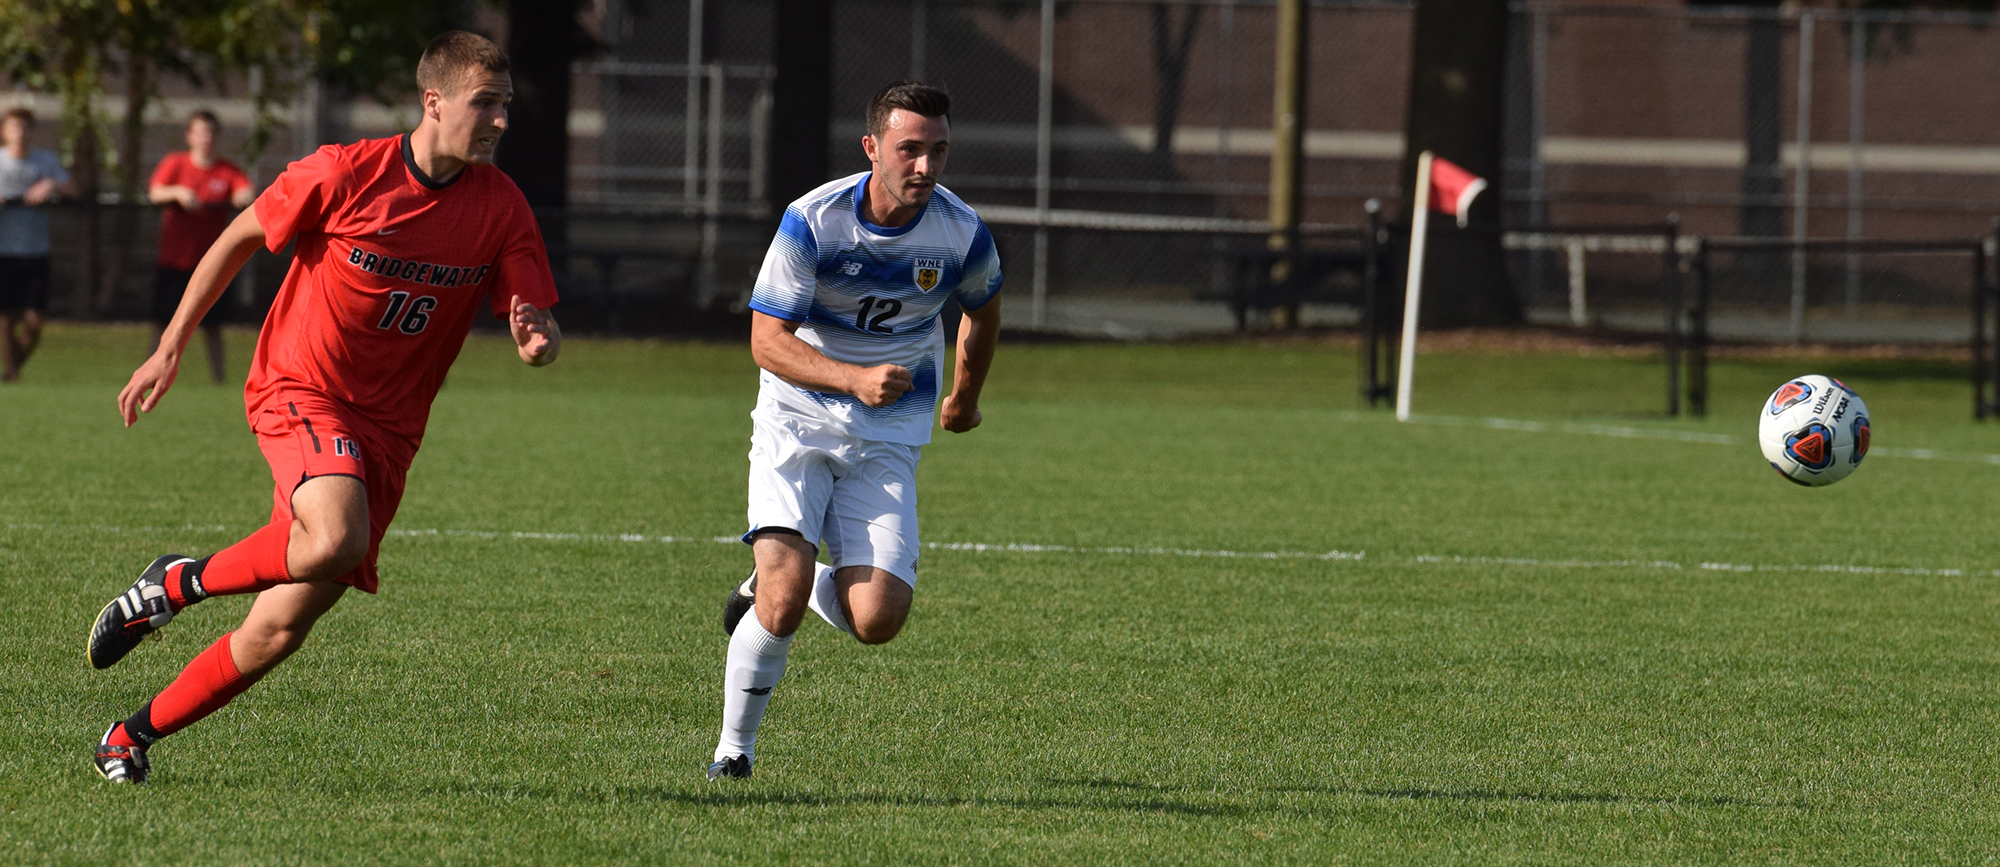 Remillard Registers Second Career Hat Trick as Golden Bears Open Season With 4-0 Win Over Bridgewater State